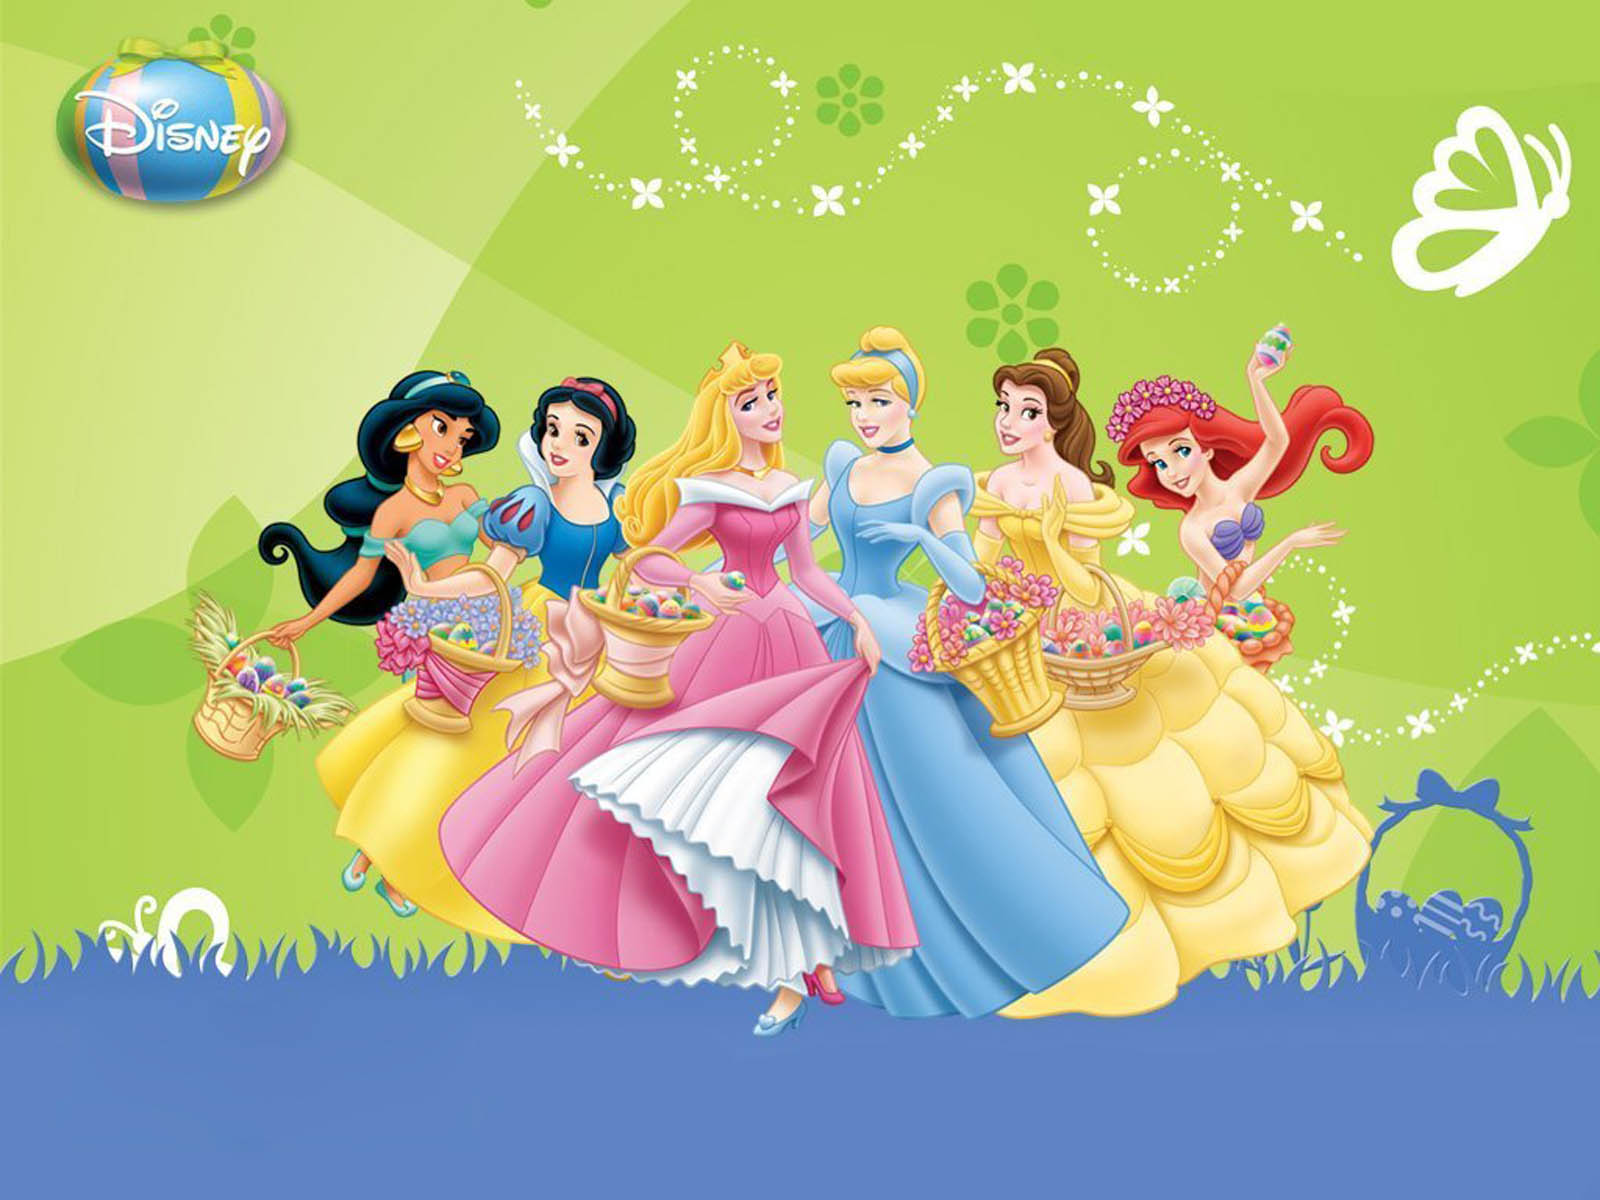 princesses hd wallpapers free - photo #29